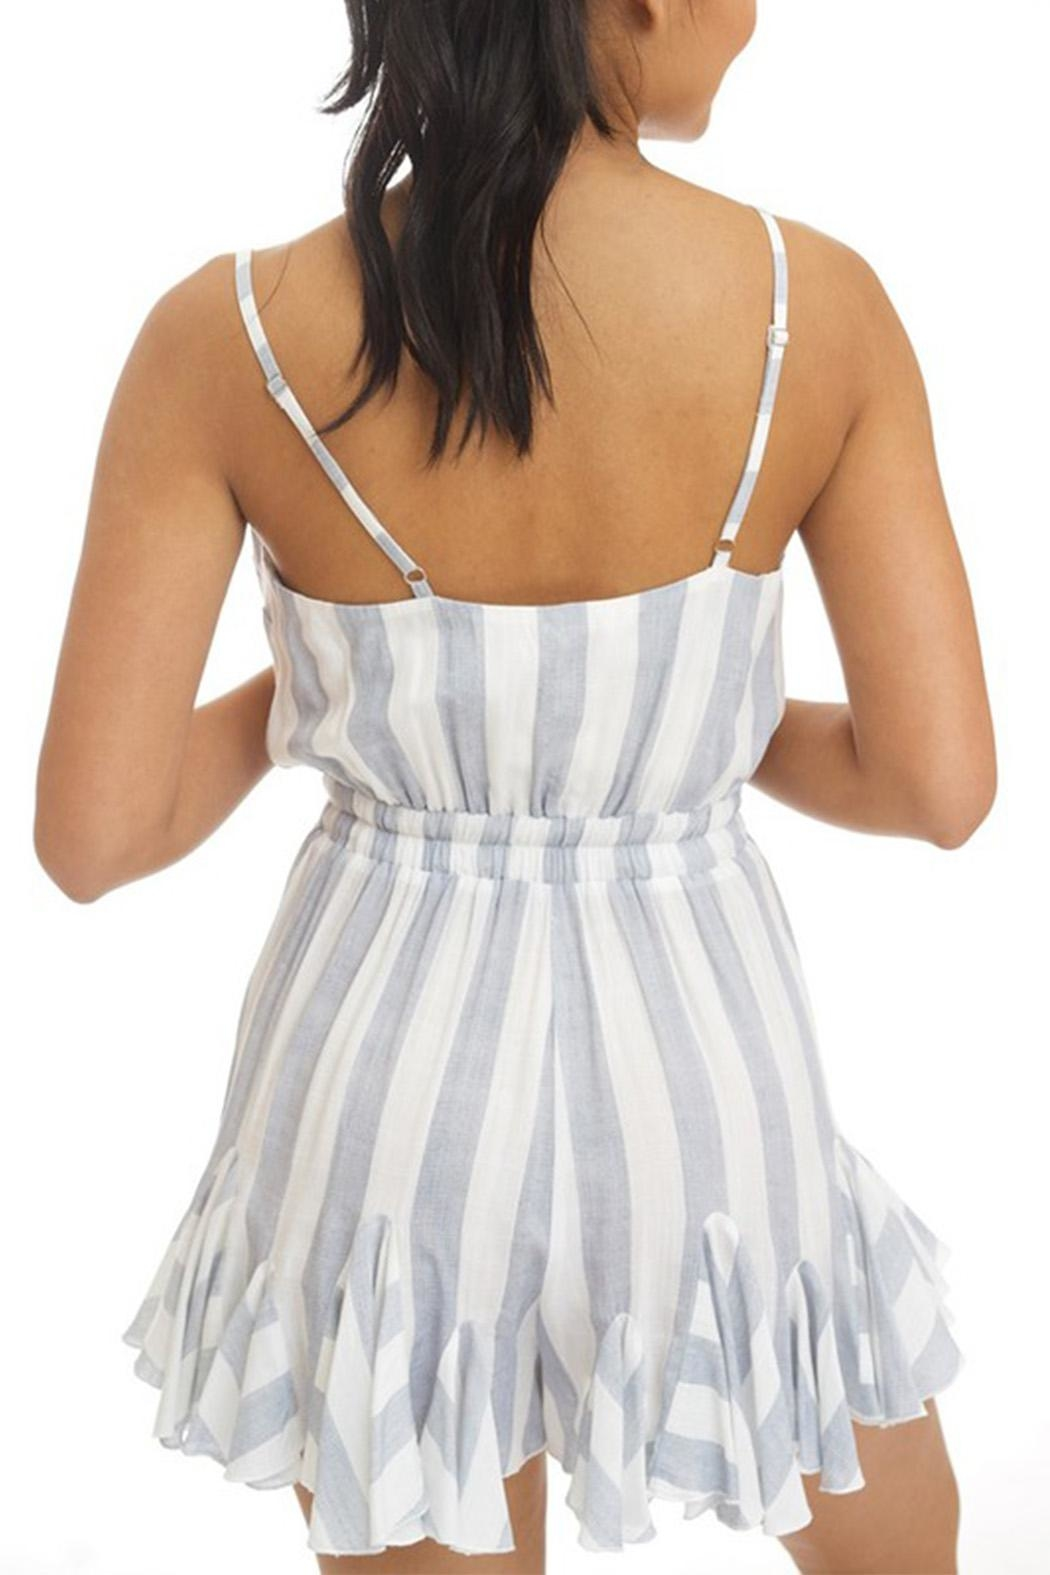 luxxel Striped Romper - Front Full Image